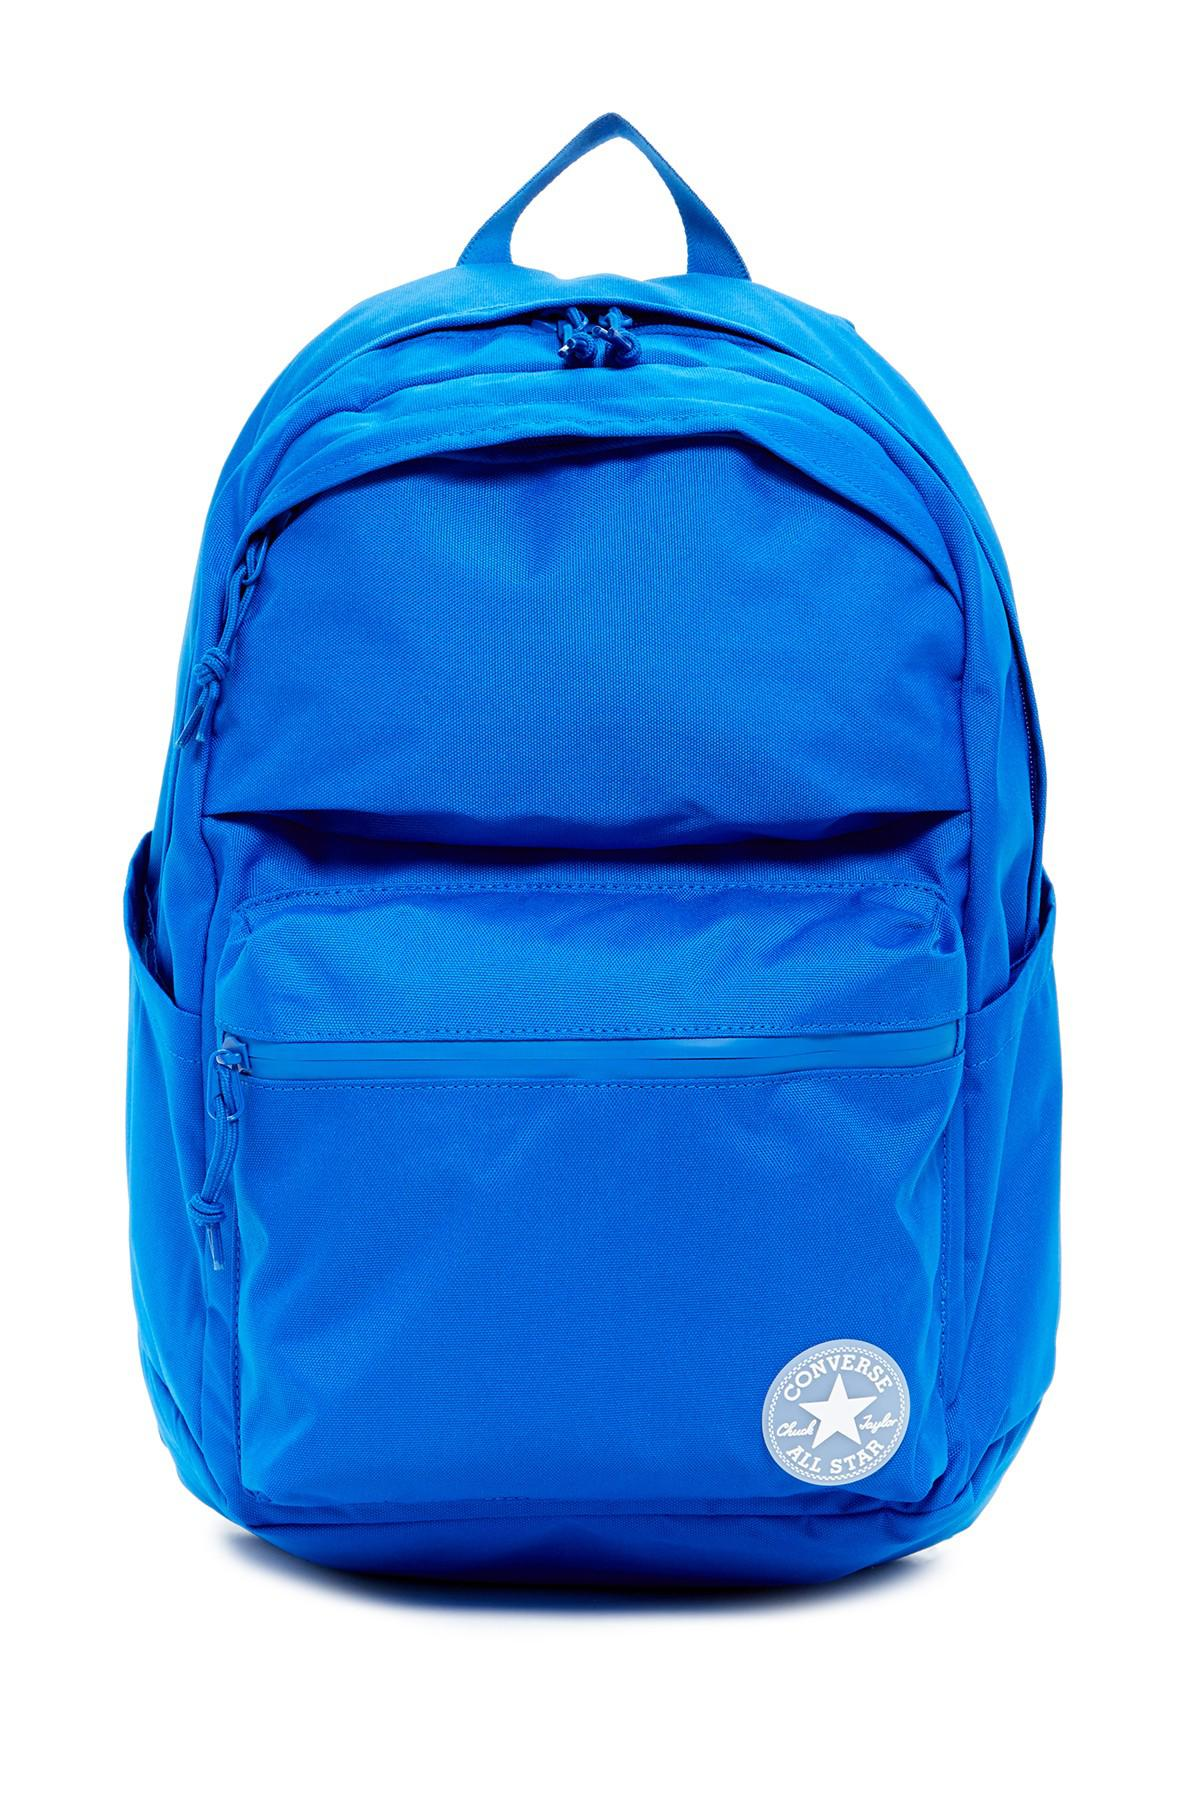 8e494a64a0 Lyst - Converse Chuck Plus Backpack in Blue for Men